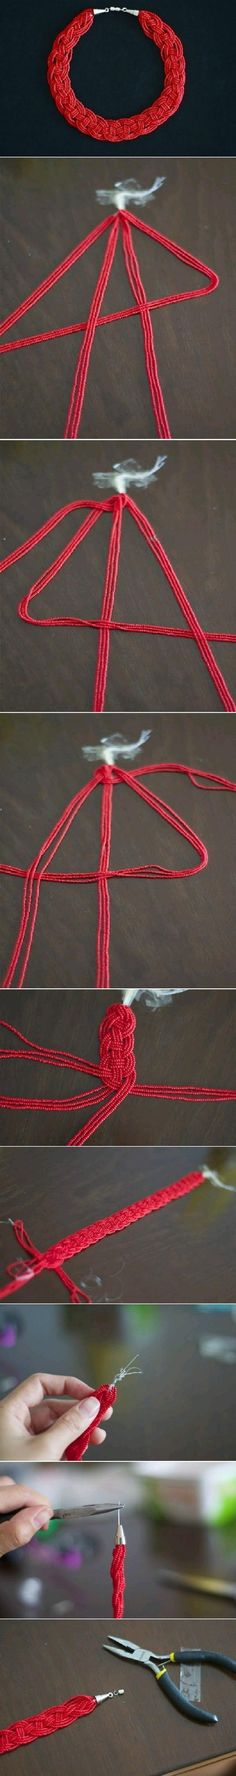 DIY Pretty Necklace. Can make this a bracelet too! vma.